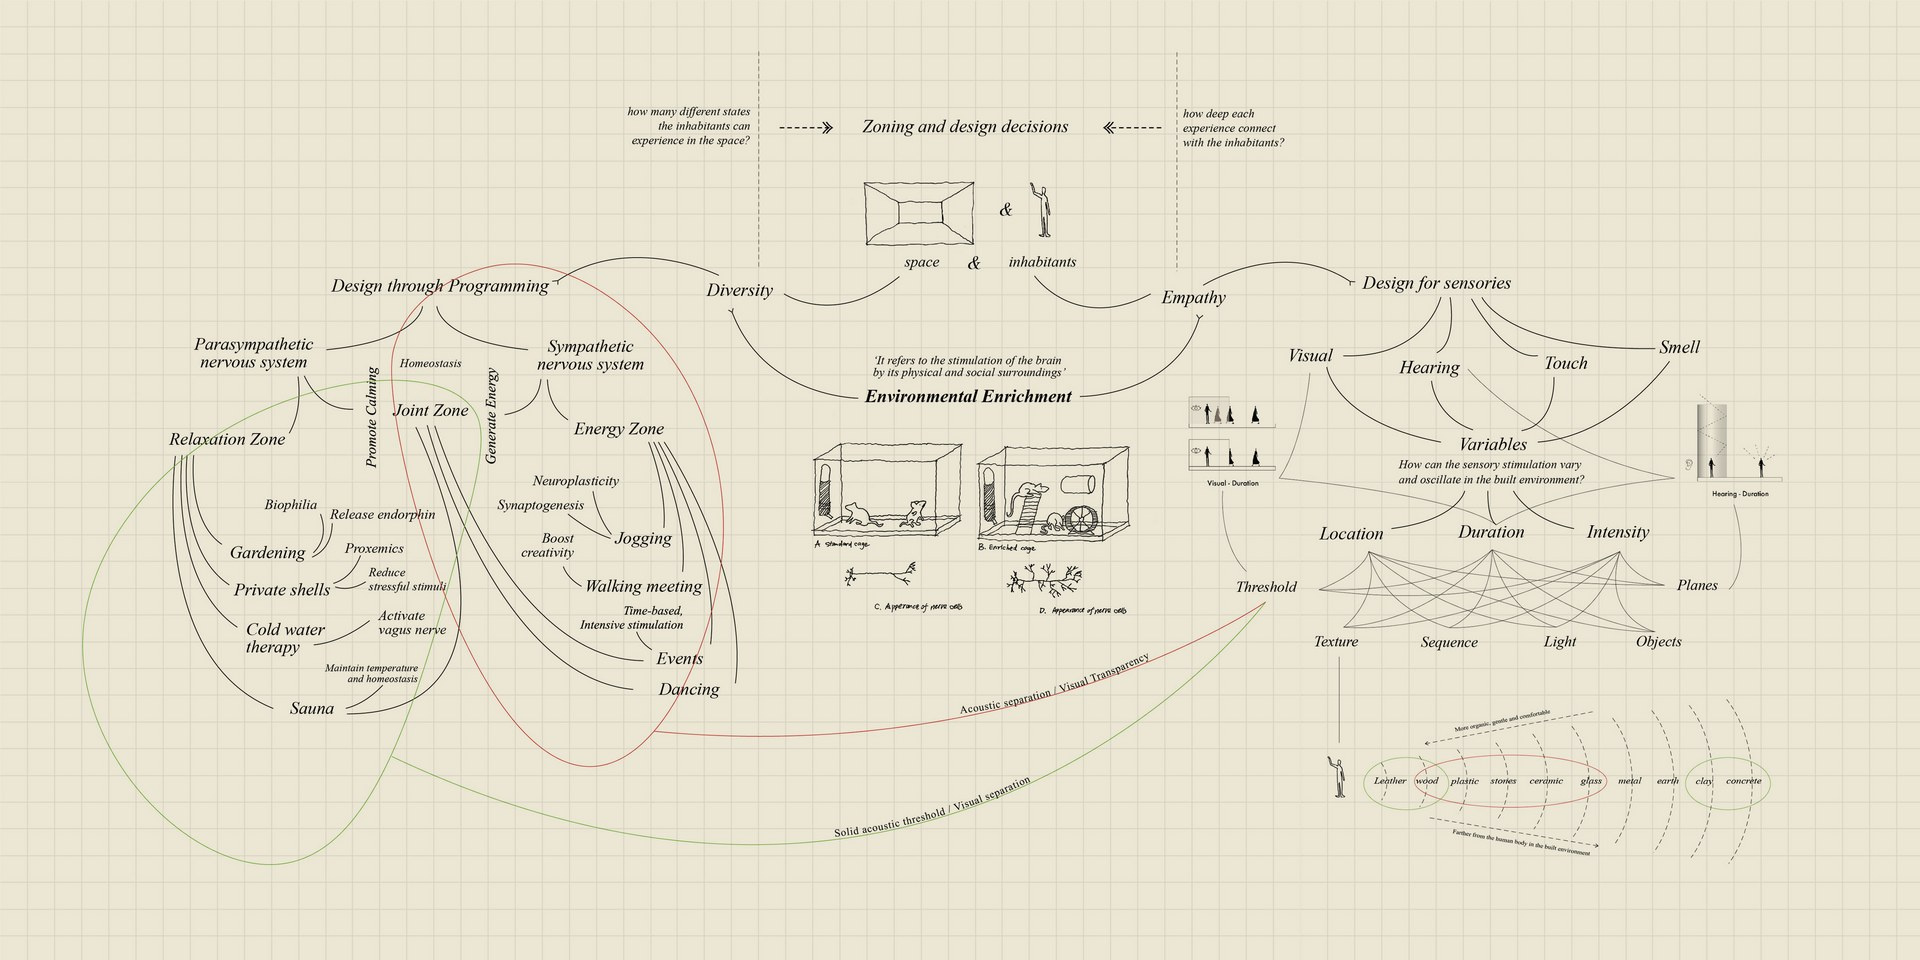 Design development based on the research